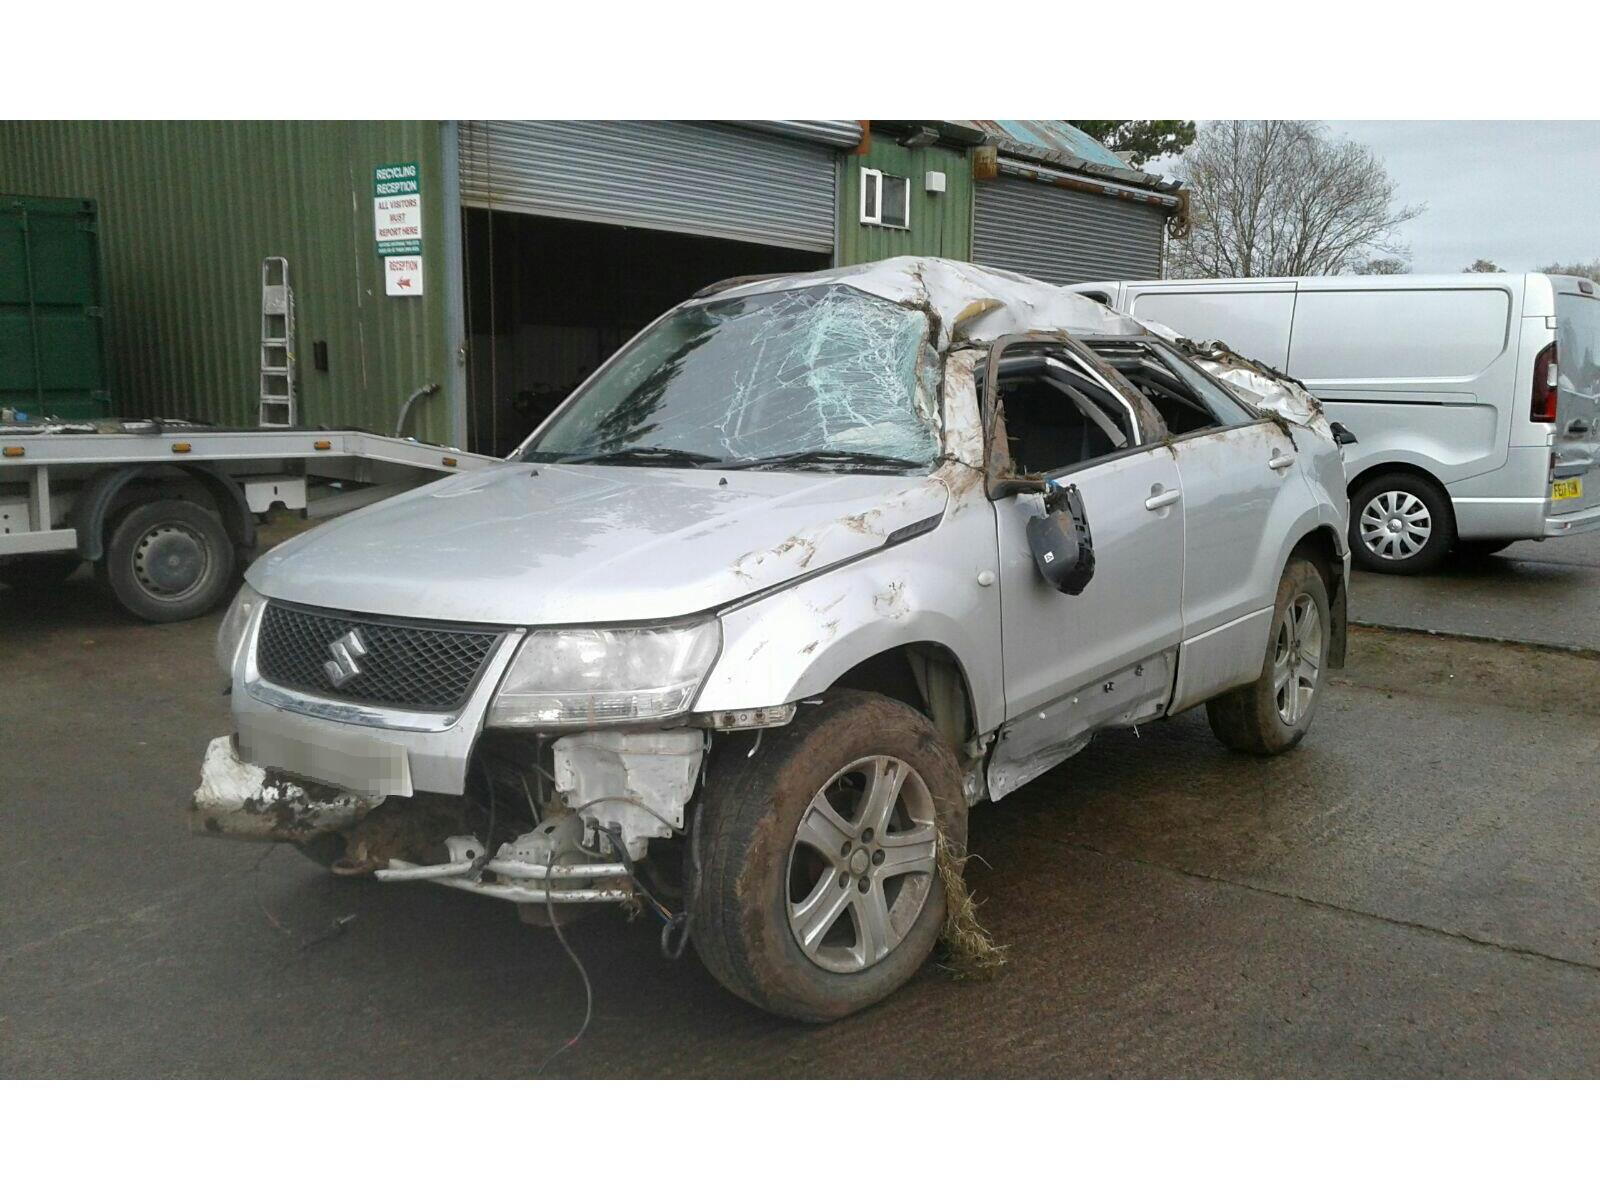 2006 Suzuki Grand Vitara 1998 To 2006 5 Door 4x4 (Petrol